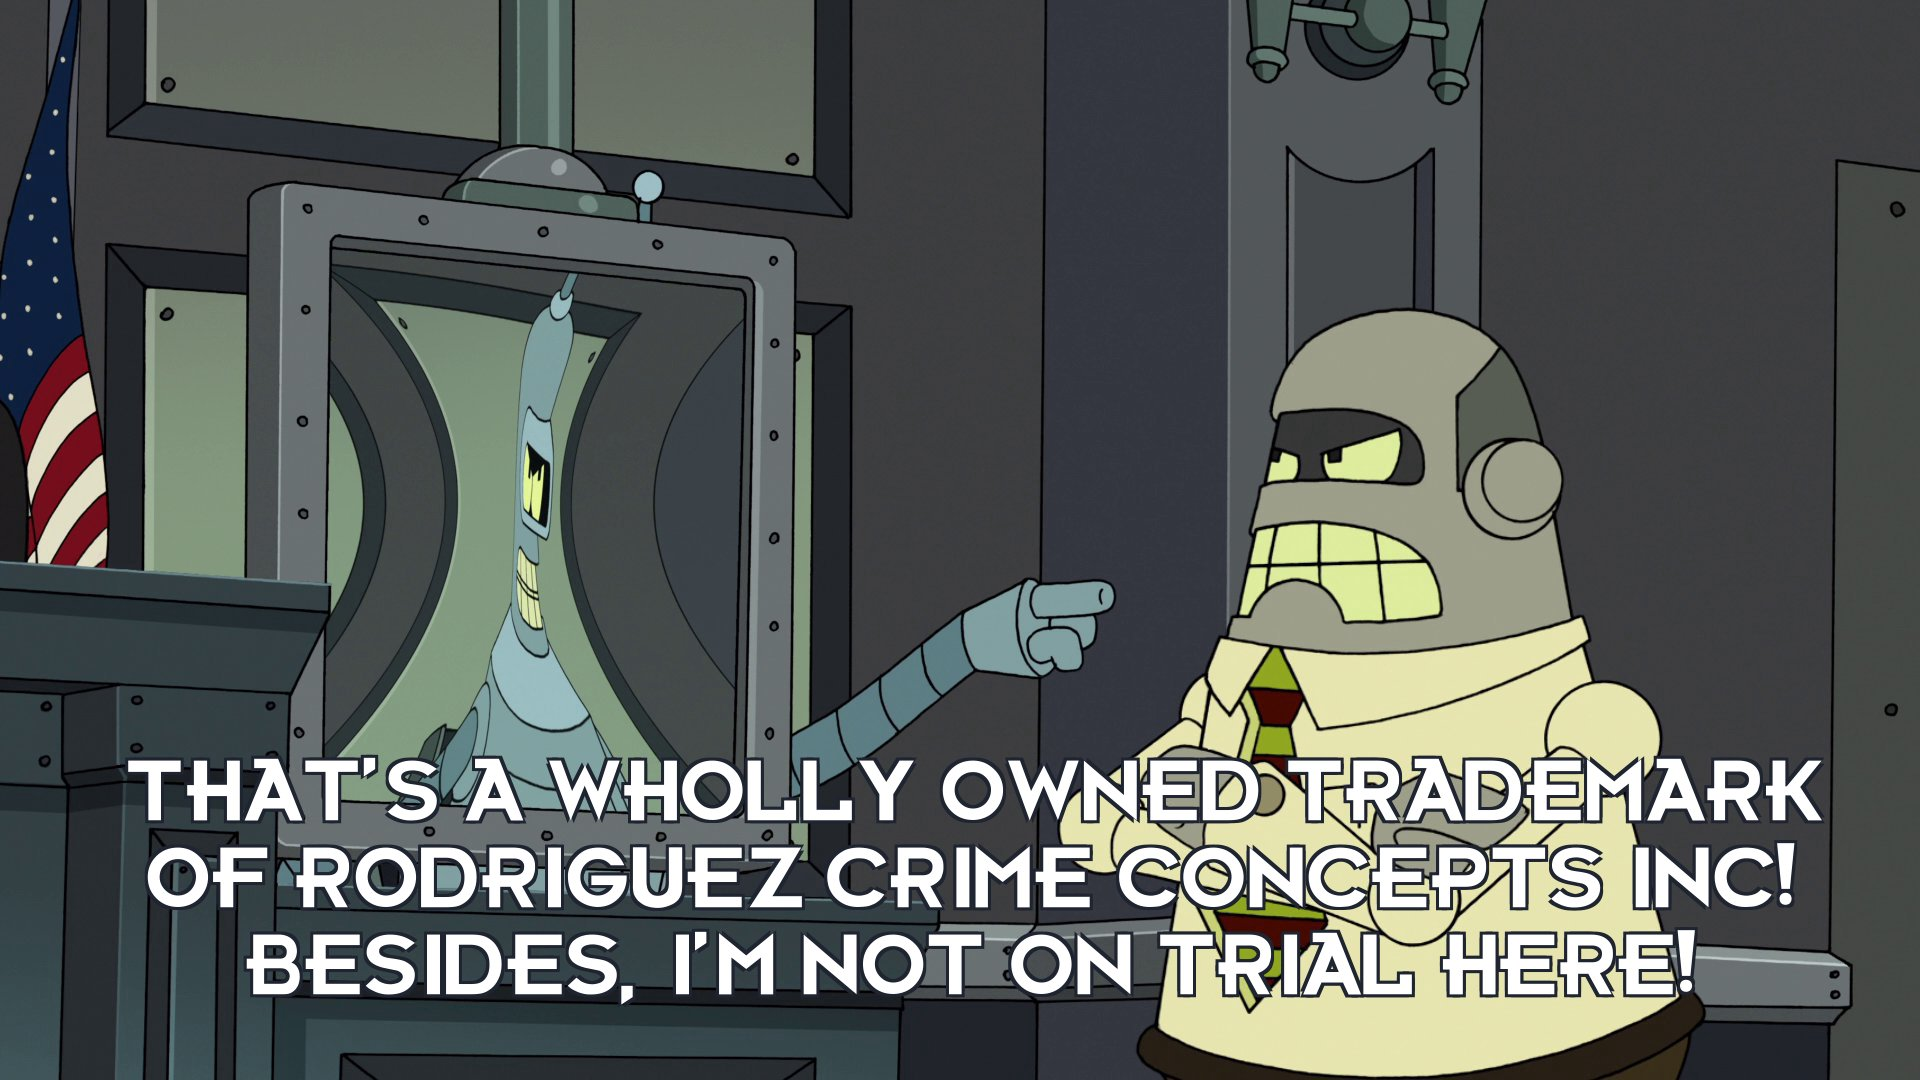 Bender Bending Rodriguez: That's a wholly owned trademark of Rodriguez Crime Concepts Inc! Besides, I'm not on trial here!